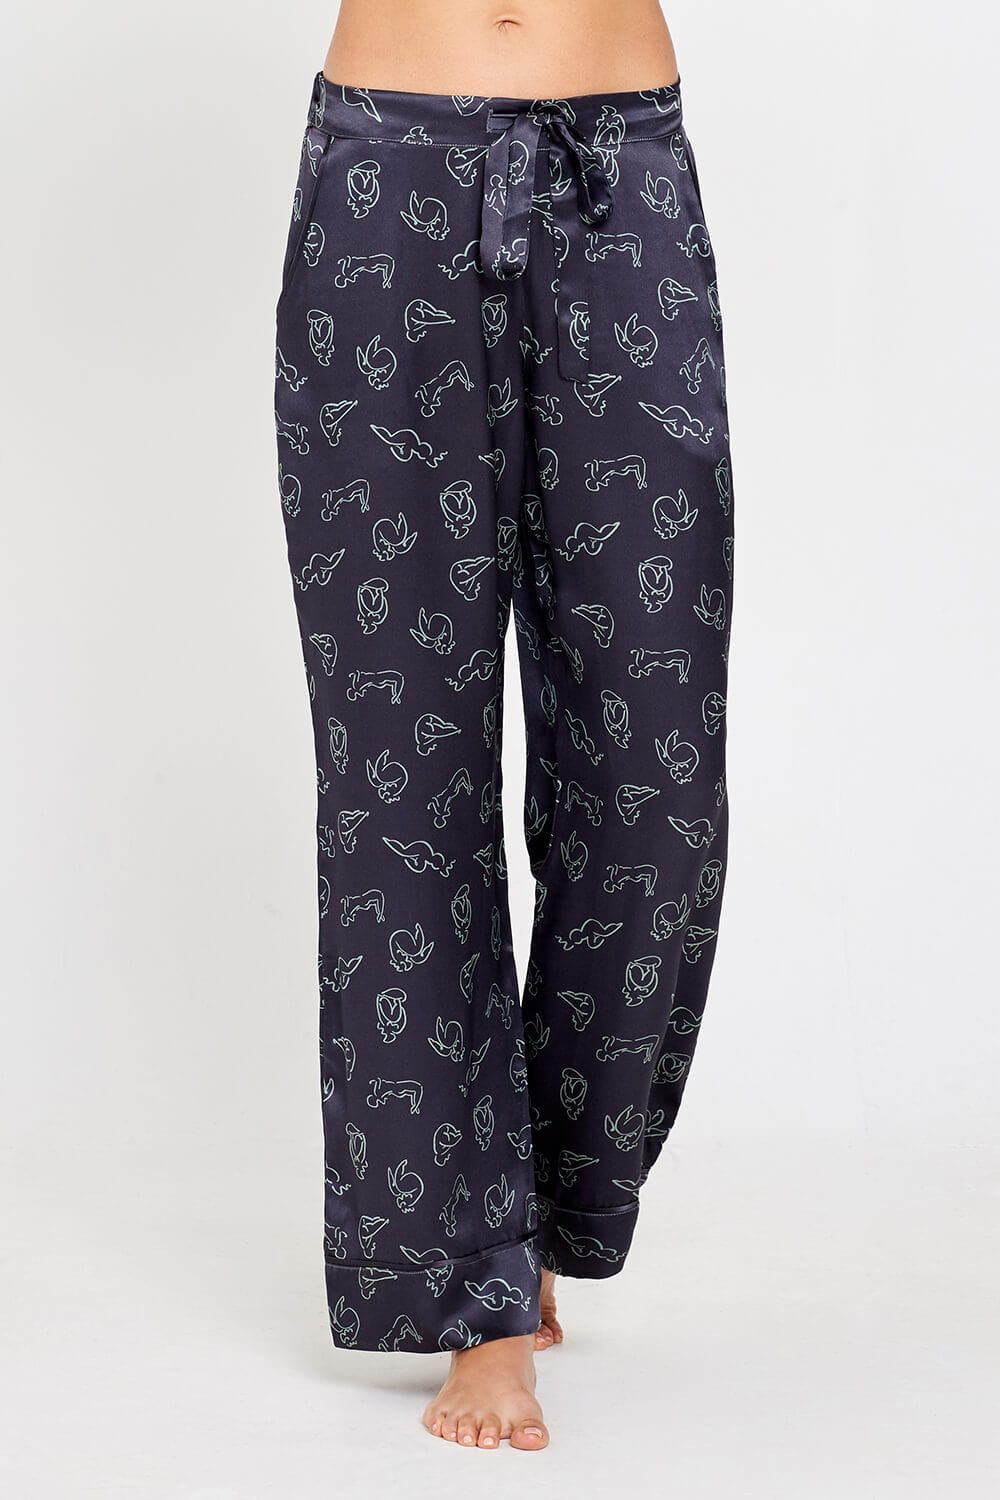 Evie PJs Charcoal Print Trousers